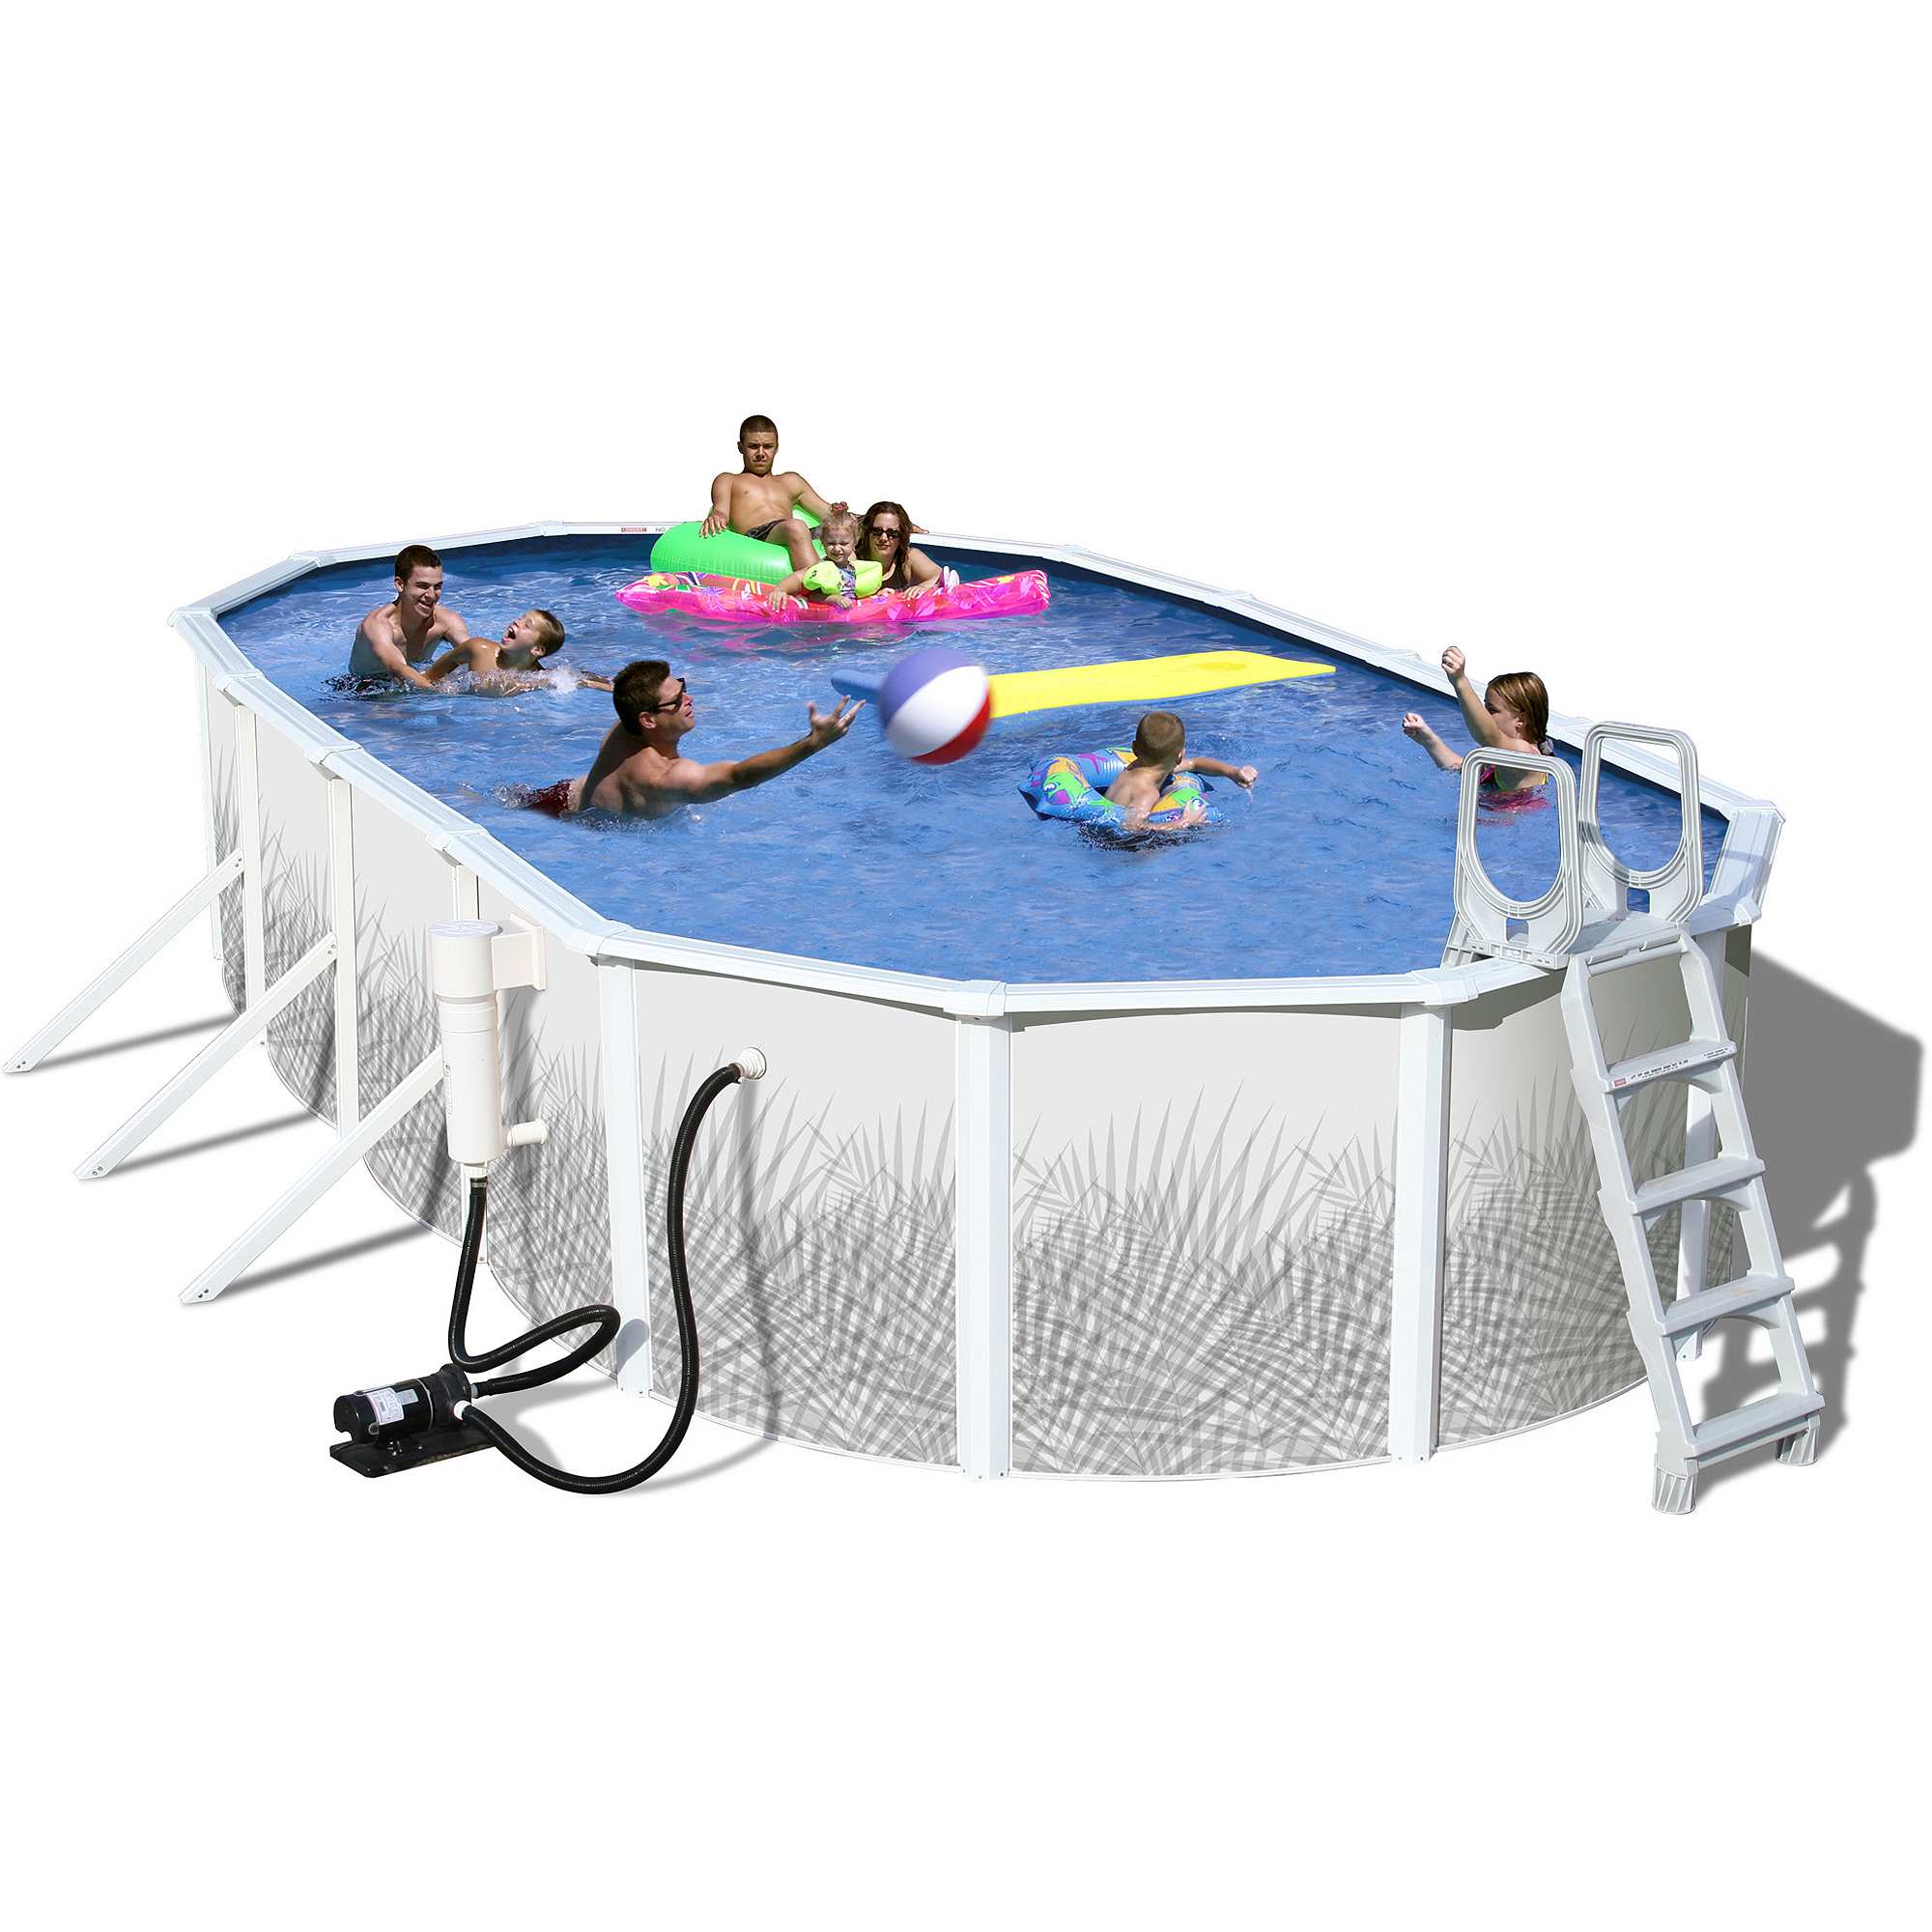 "Heritage Oval 12' x 48"" Deep Complete Above Ground Swimming Pool"